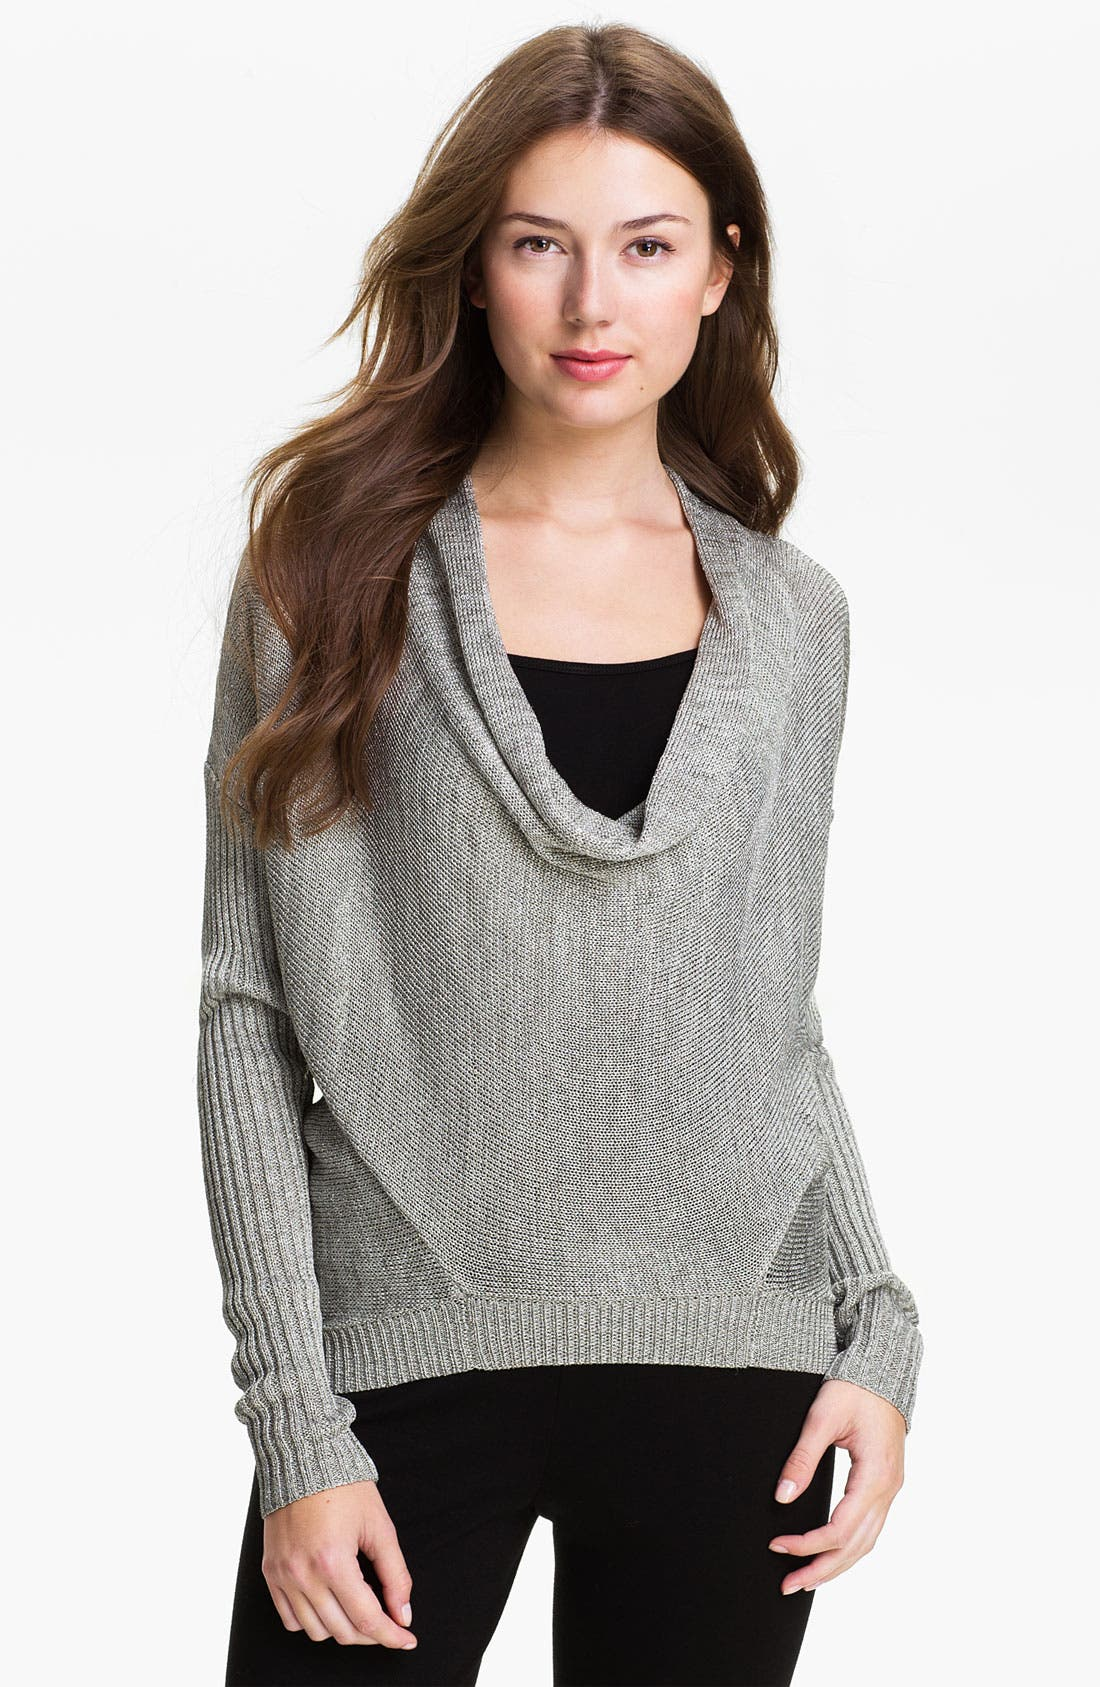 Alternate Image 1 Selected - Vince Camuto Drape Neck Metallic Knit Sweater